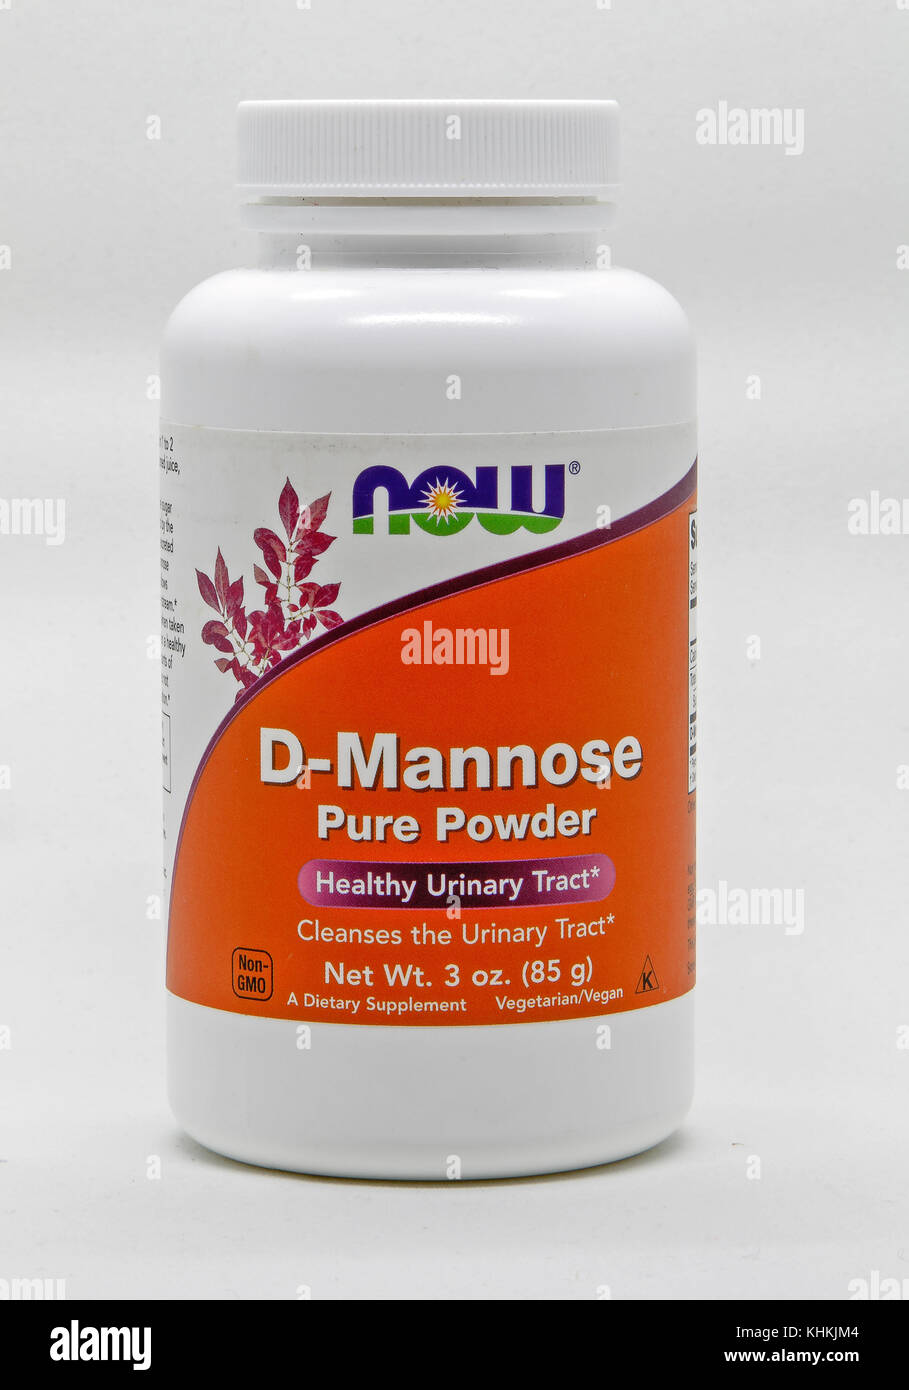 Bottle of D-Mannose, urinary tract cleanser, against white background. - Stock Image